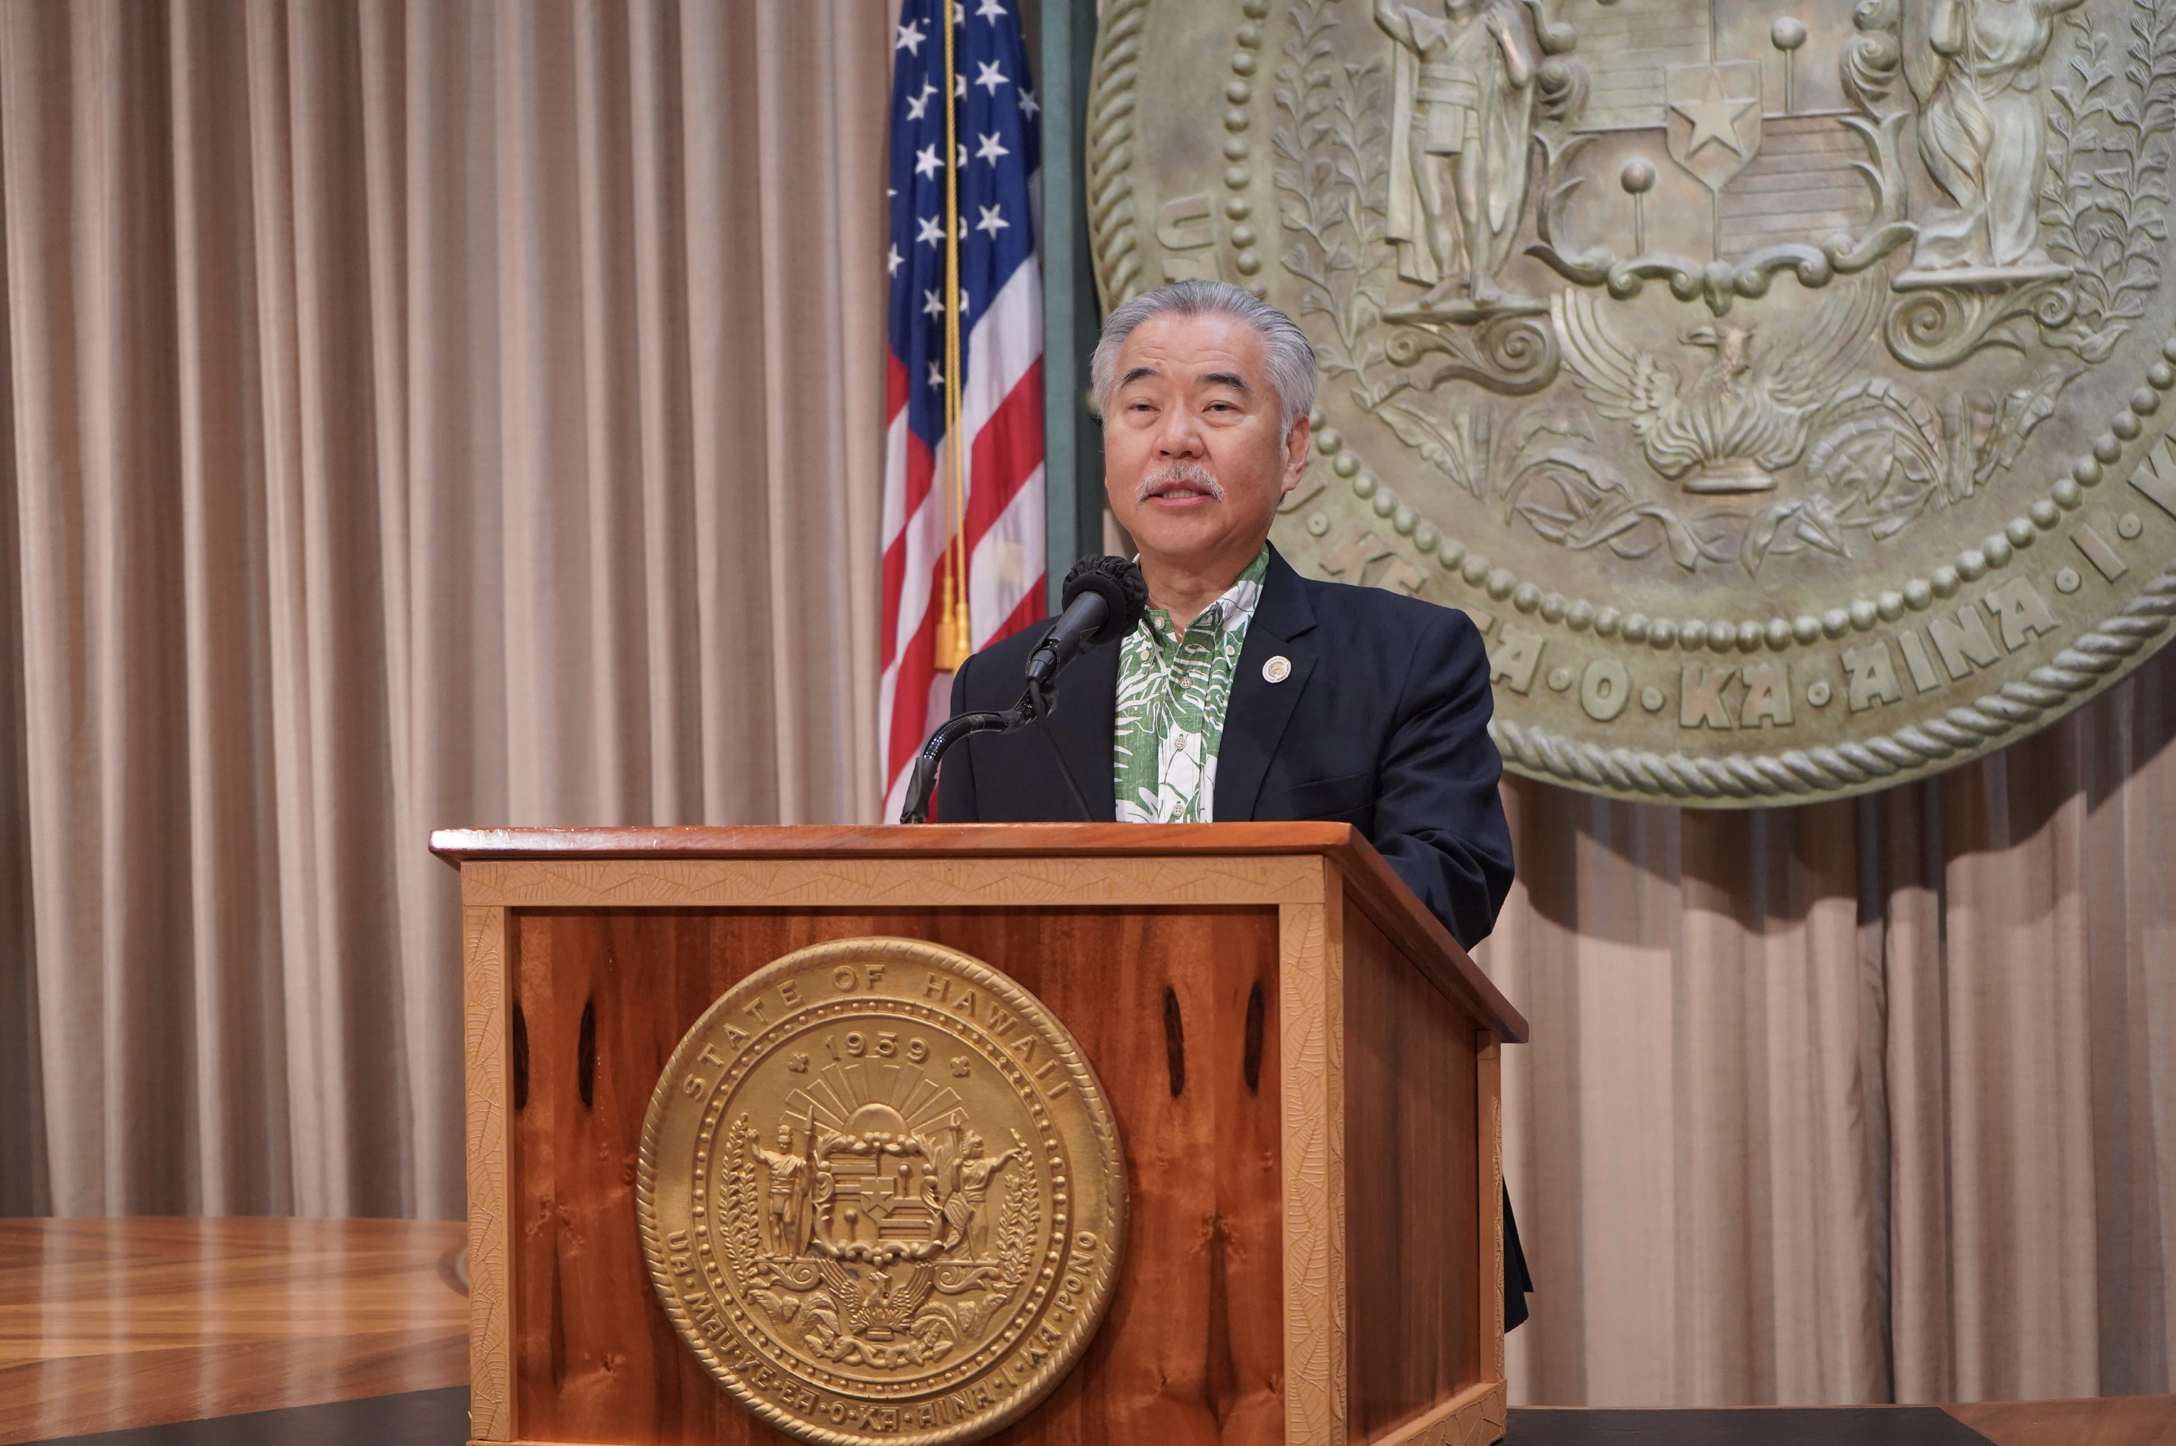 Gov. Ige Says Hawaiʻi will Maintain Mask Mandate Despite CDC's Updated Guidance